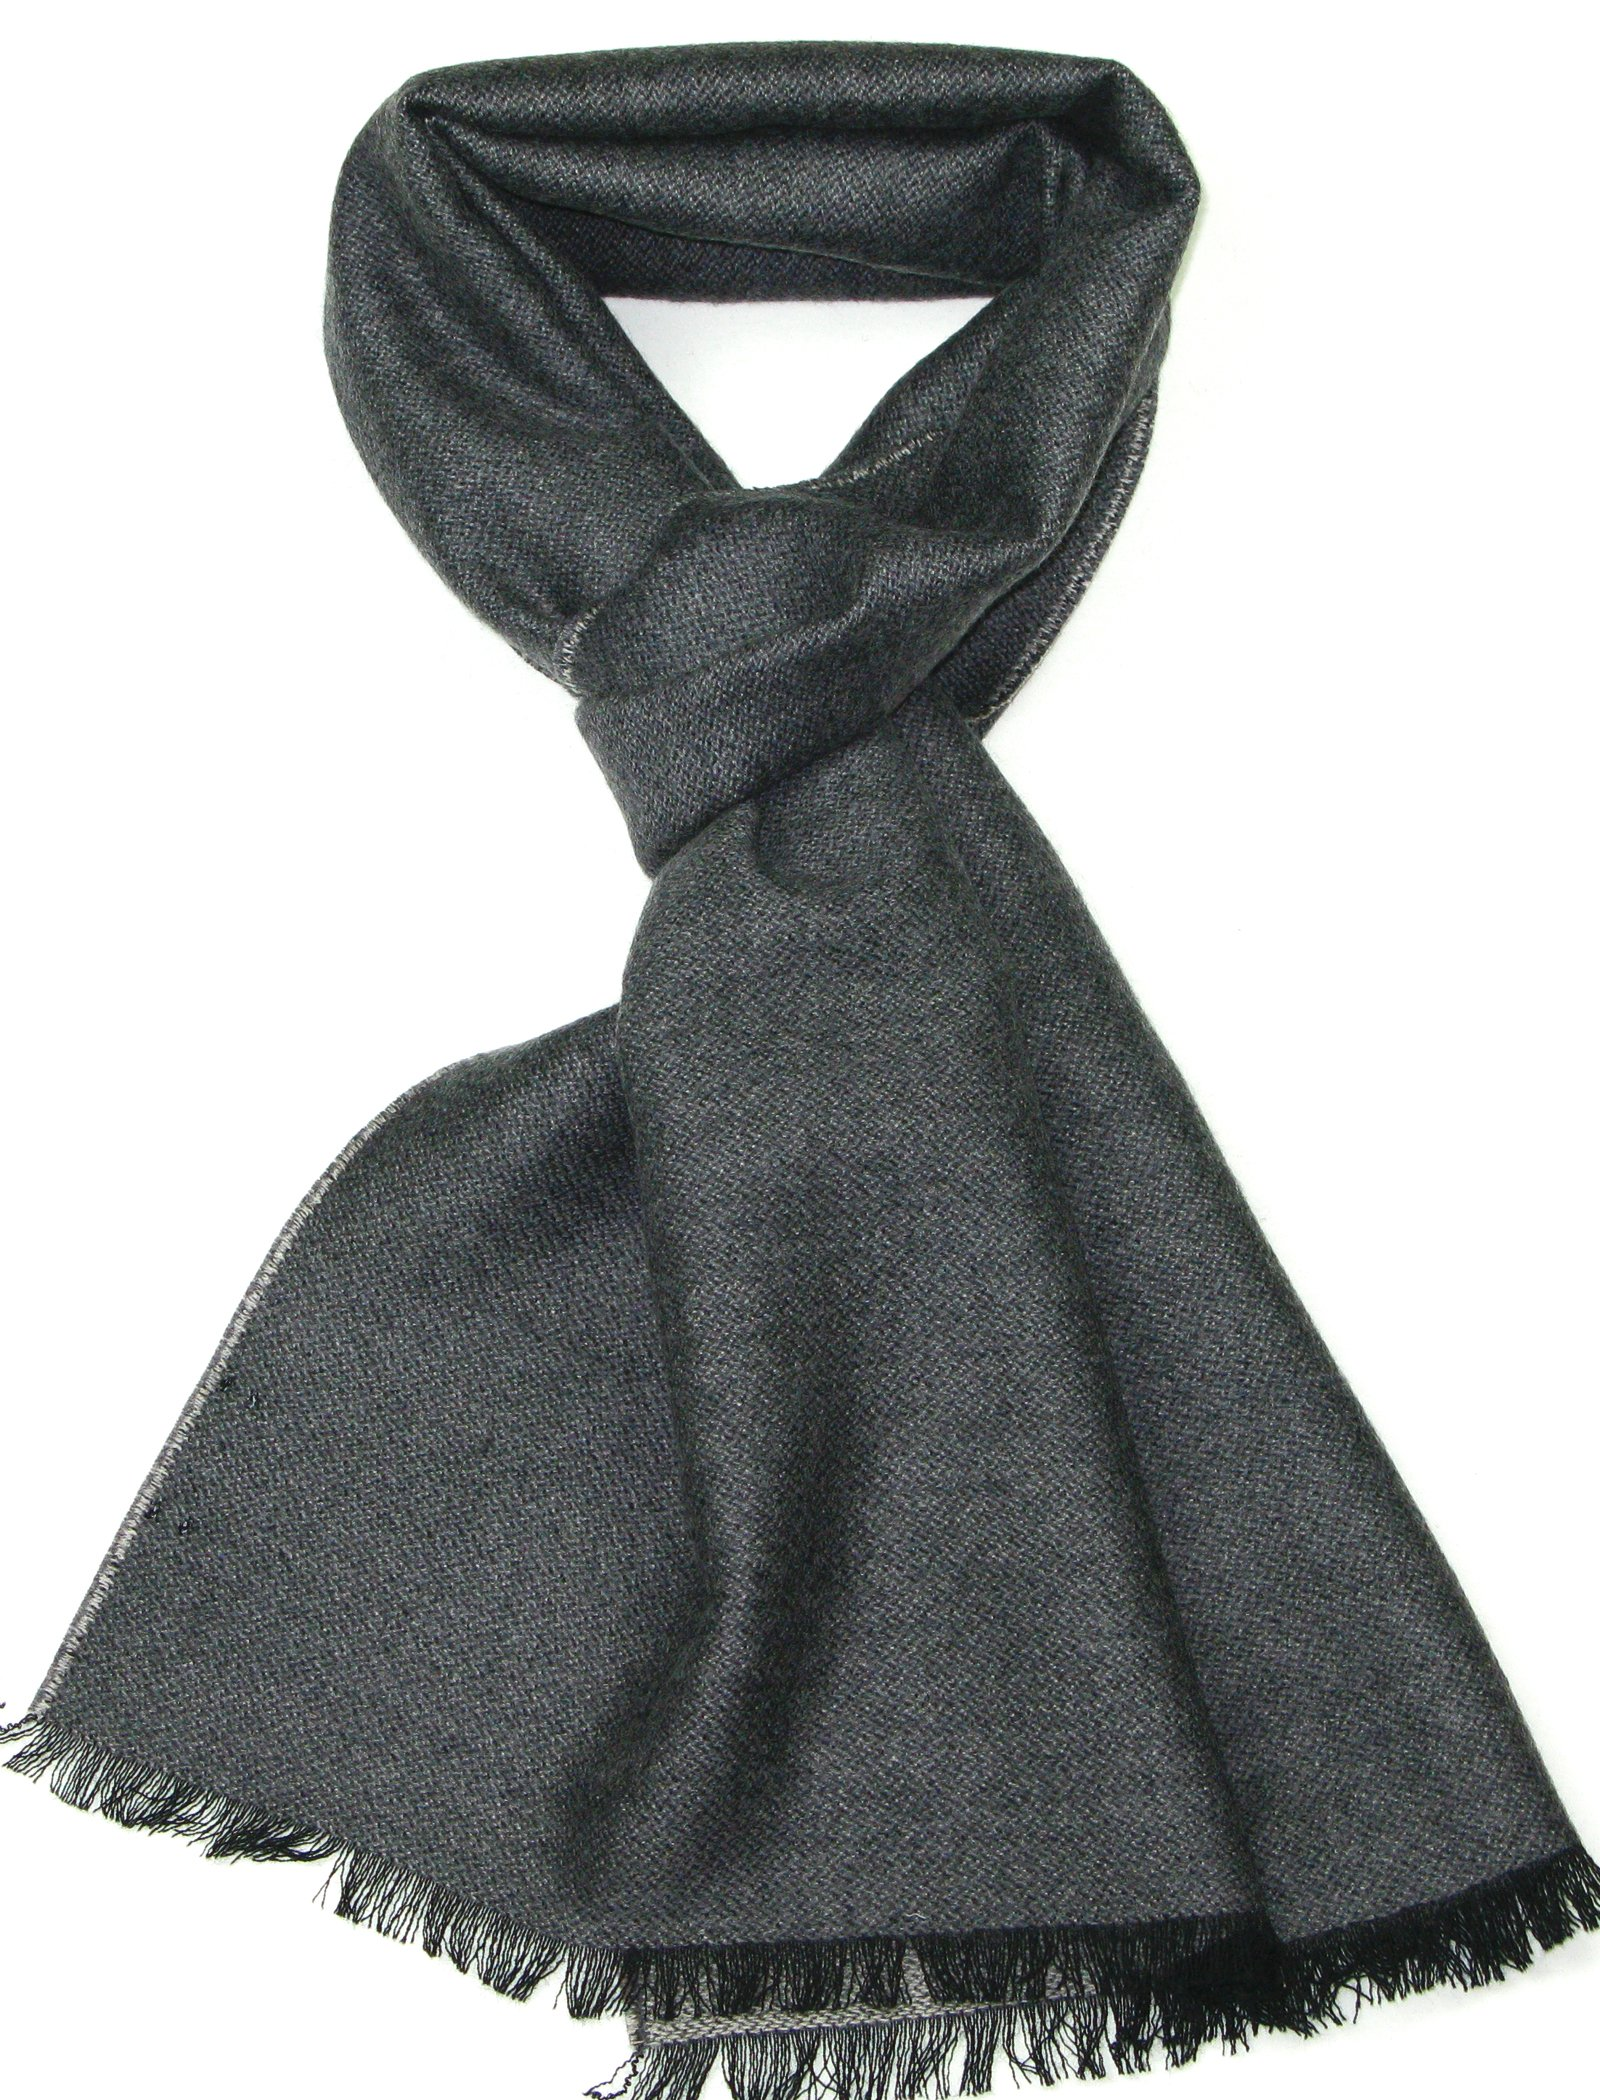 Mens and Womens Grey Merino Wool Scarf - Luxury Winter Scarves - Christmas Gifts